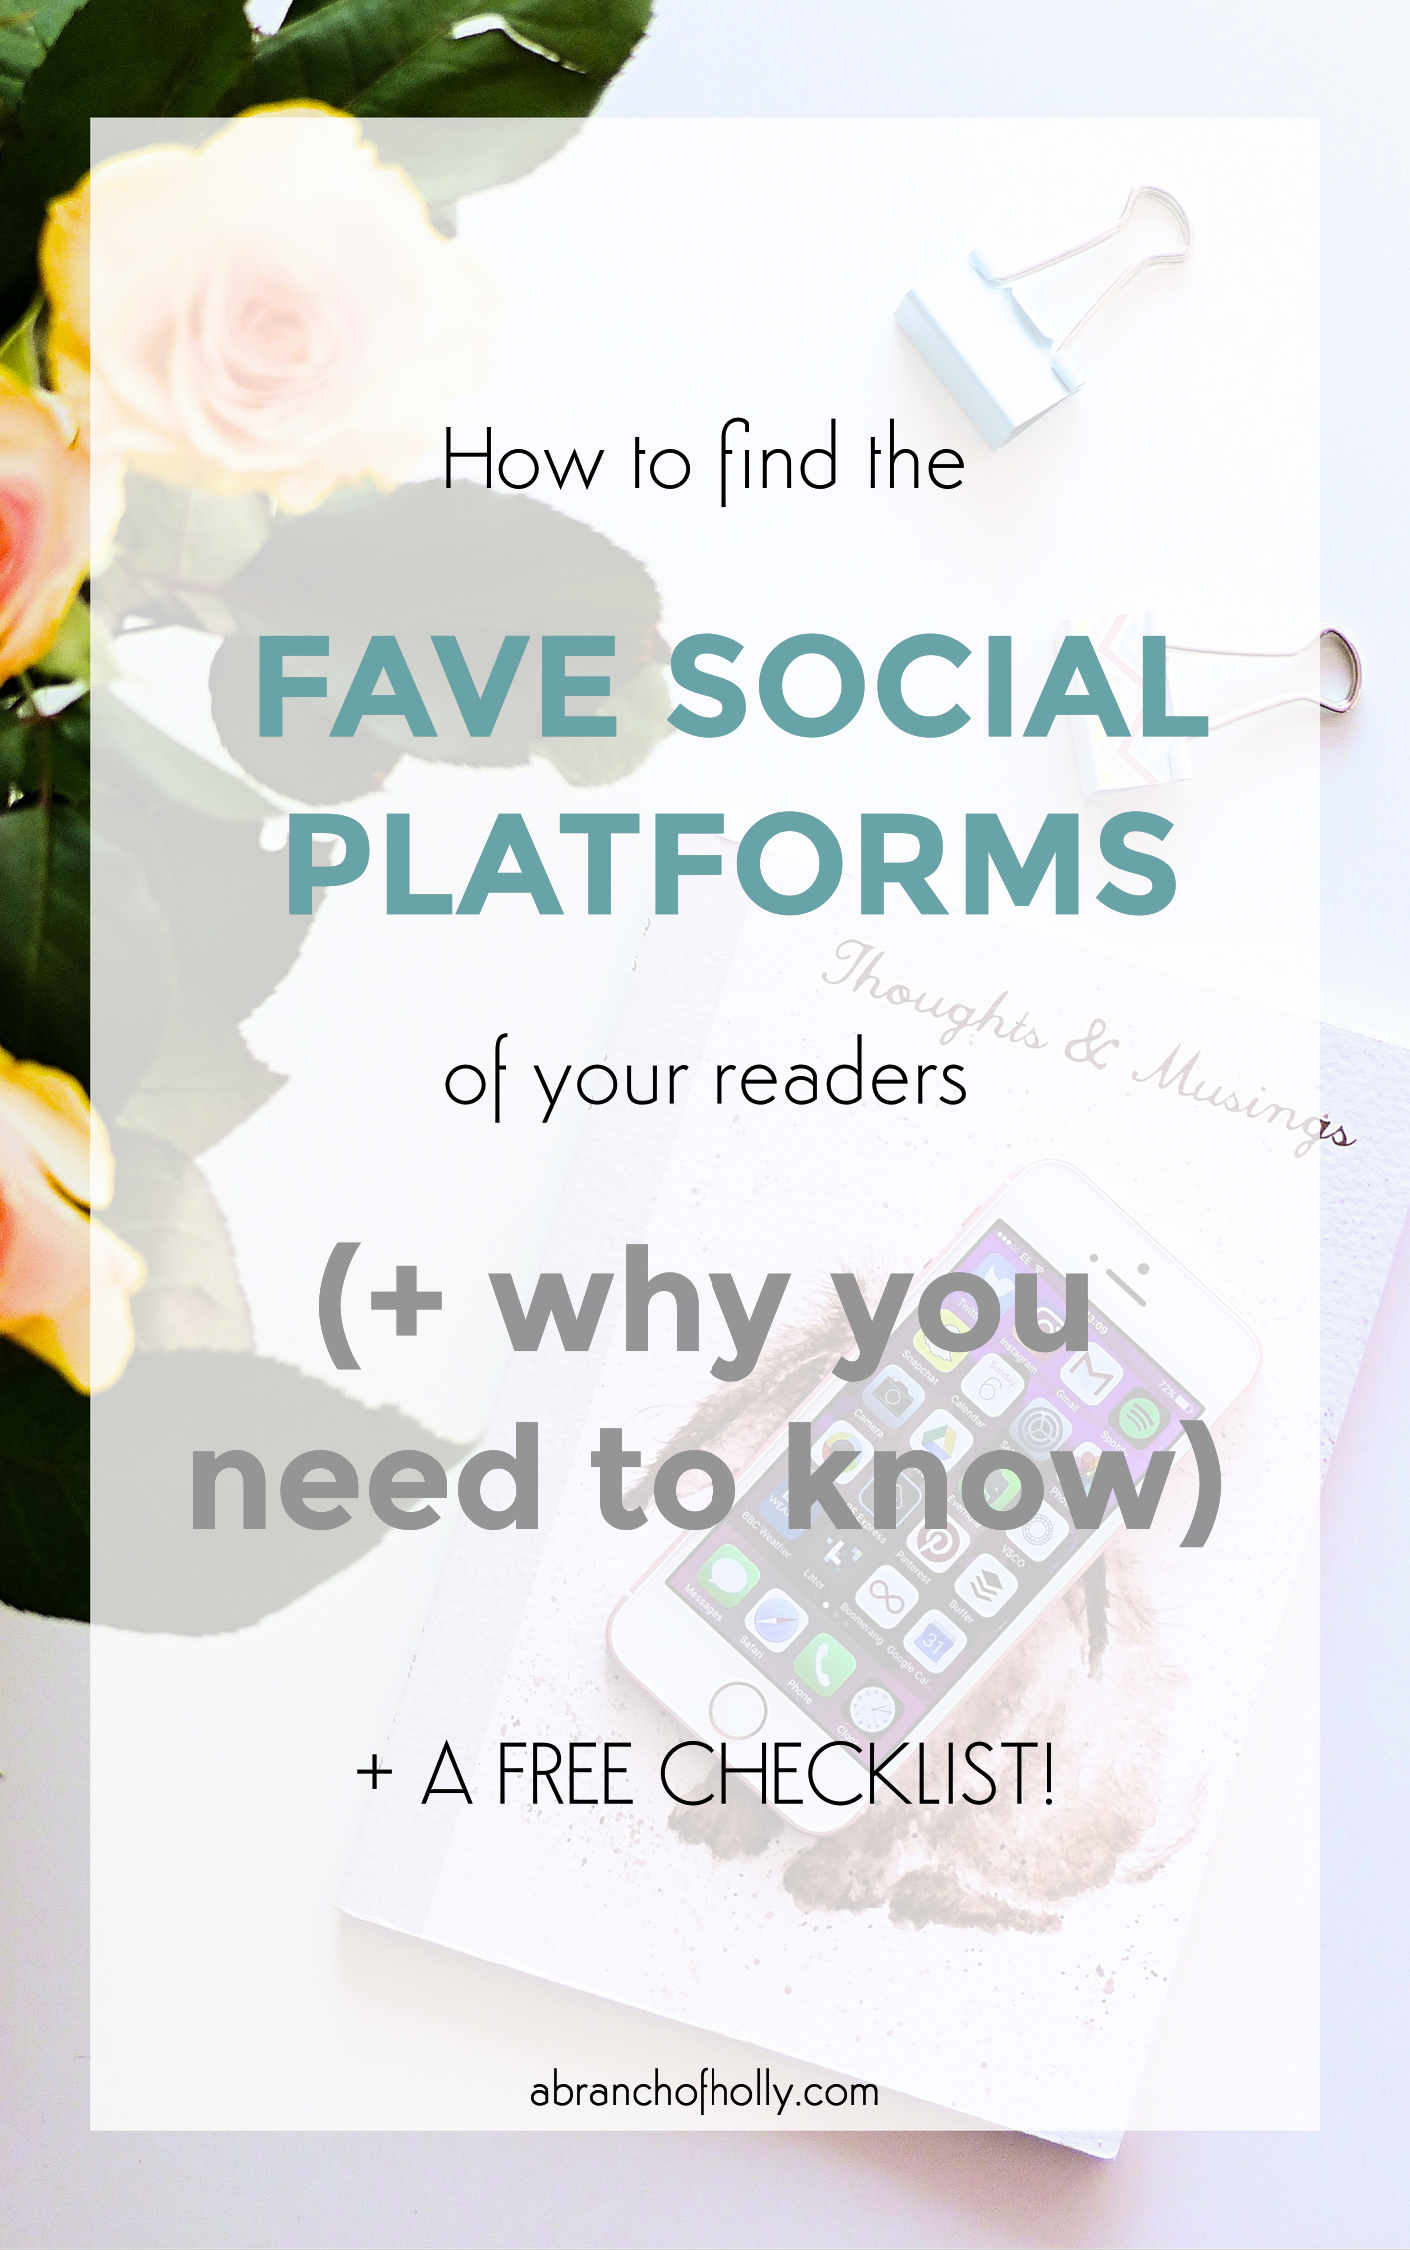 how to find the fave social platforms of your readers